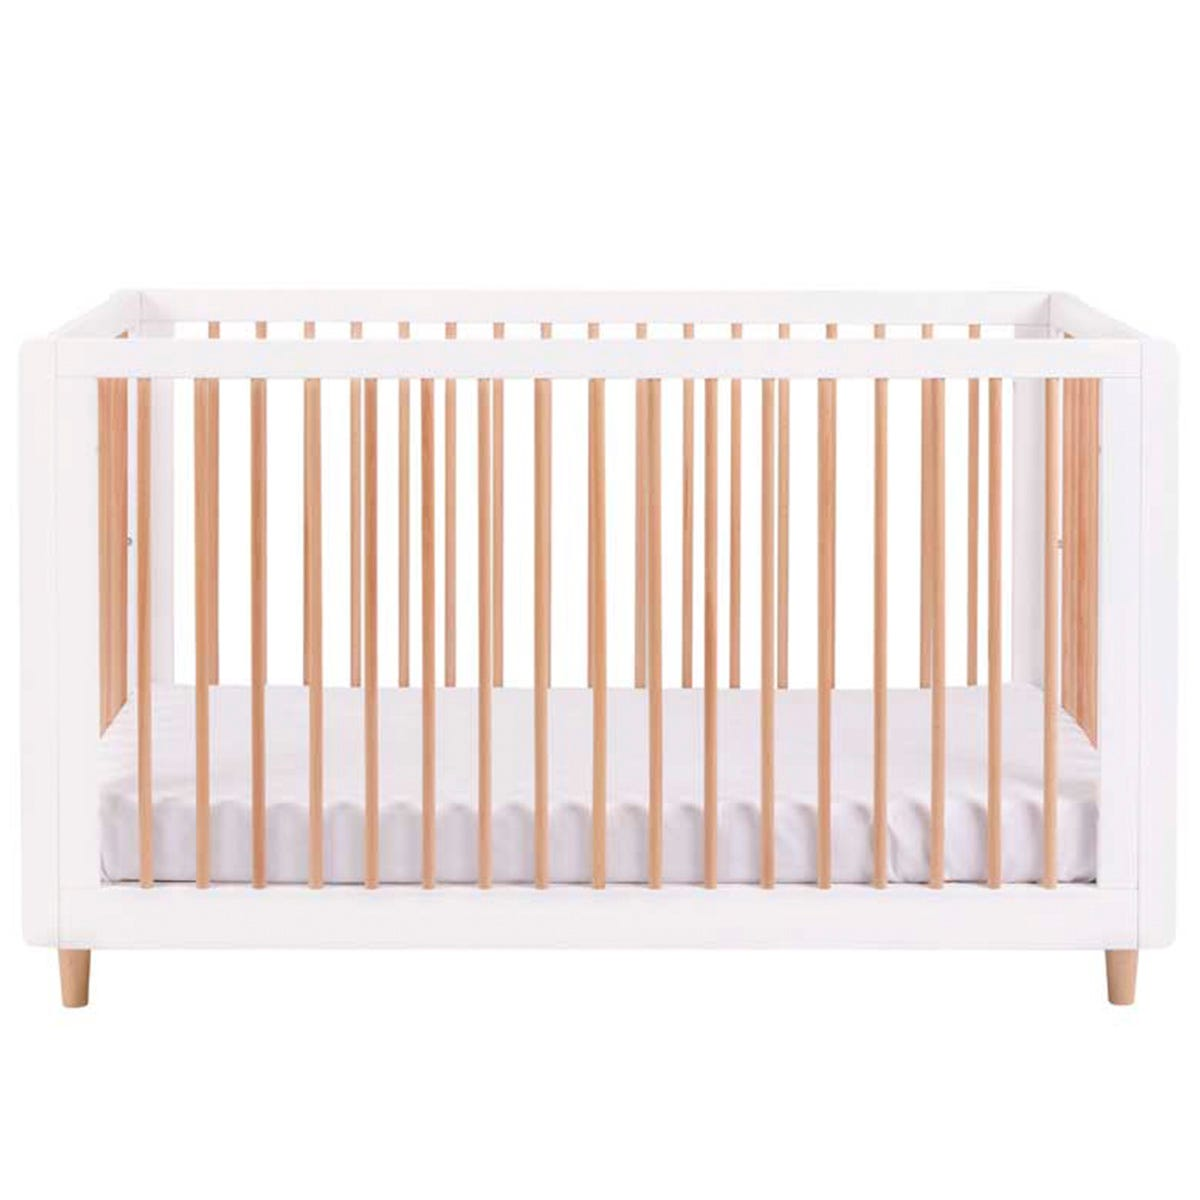 Tutti Bambini Siena 3-in-1 Cot Bed - White & Beech